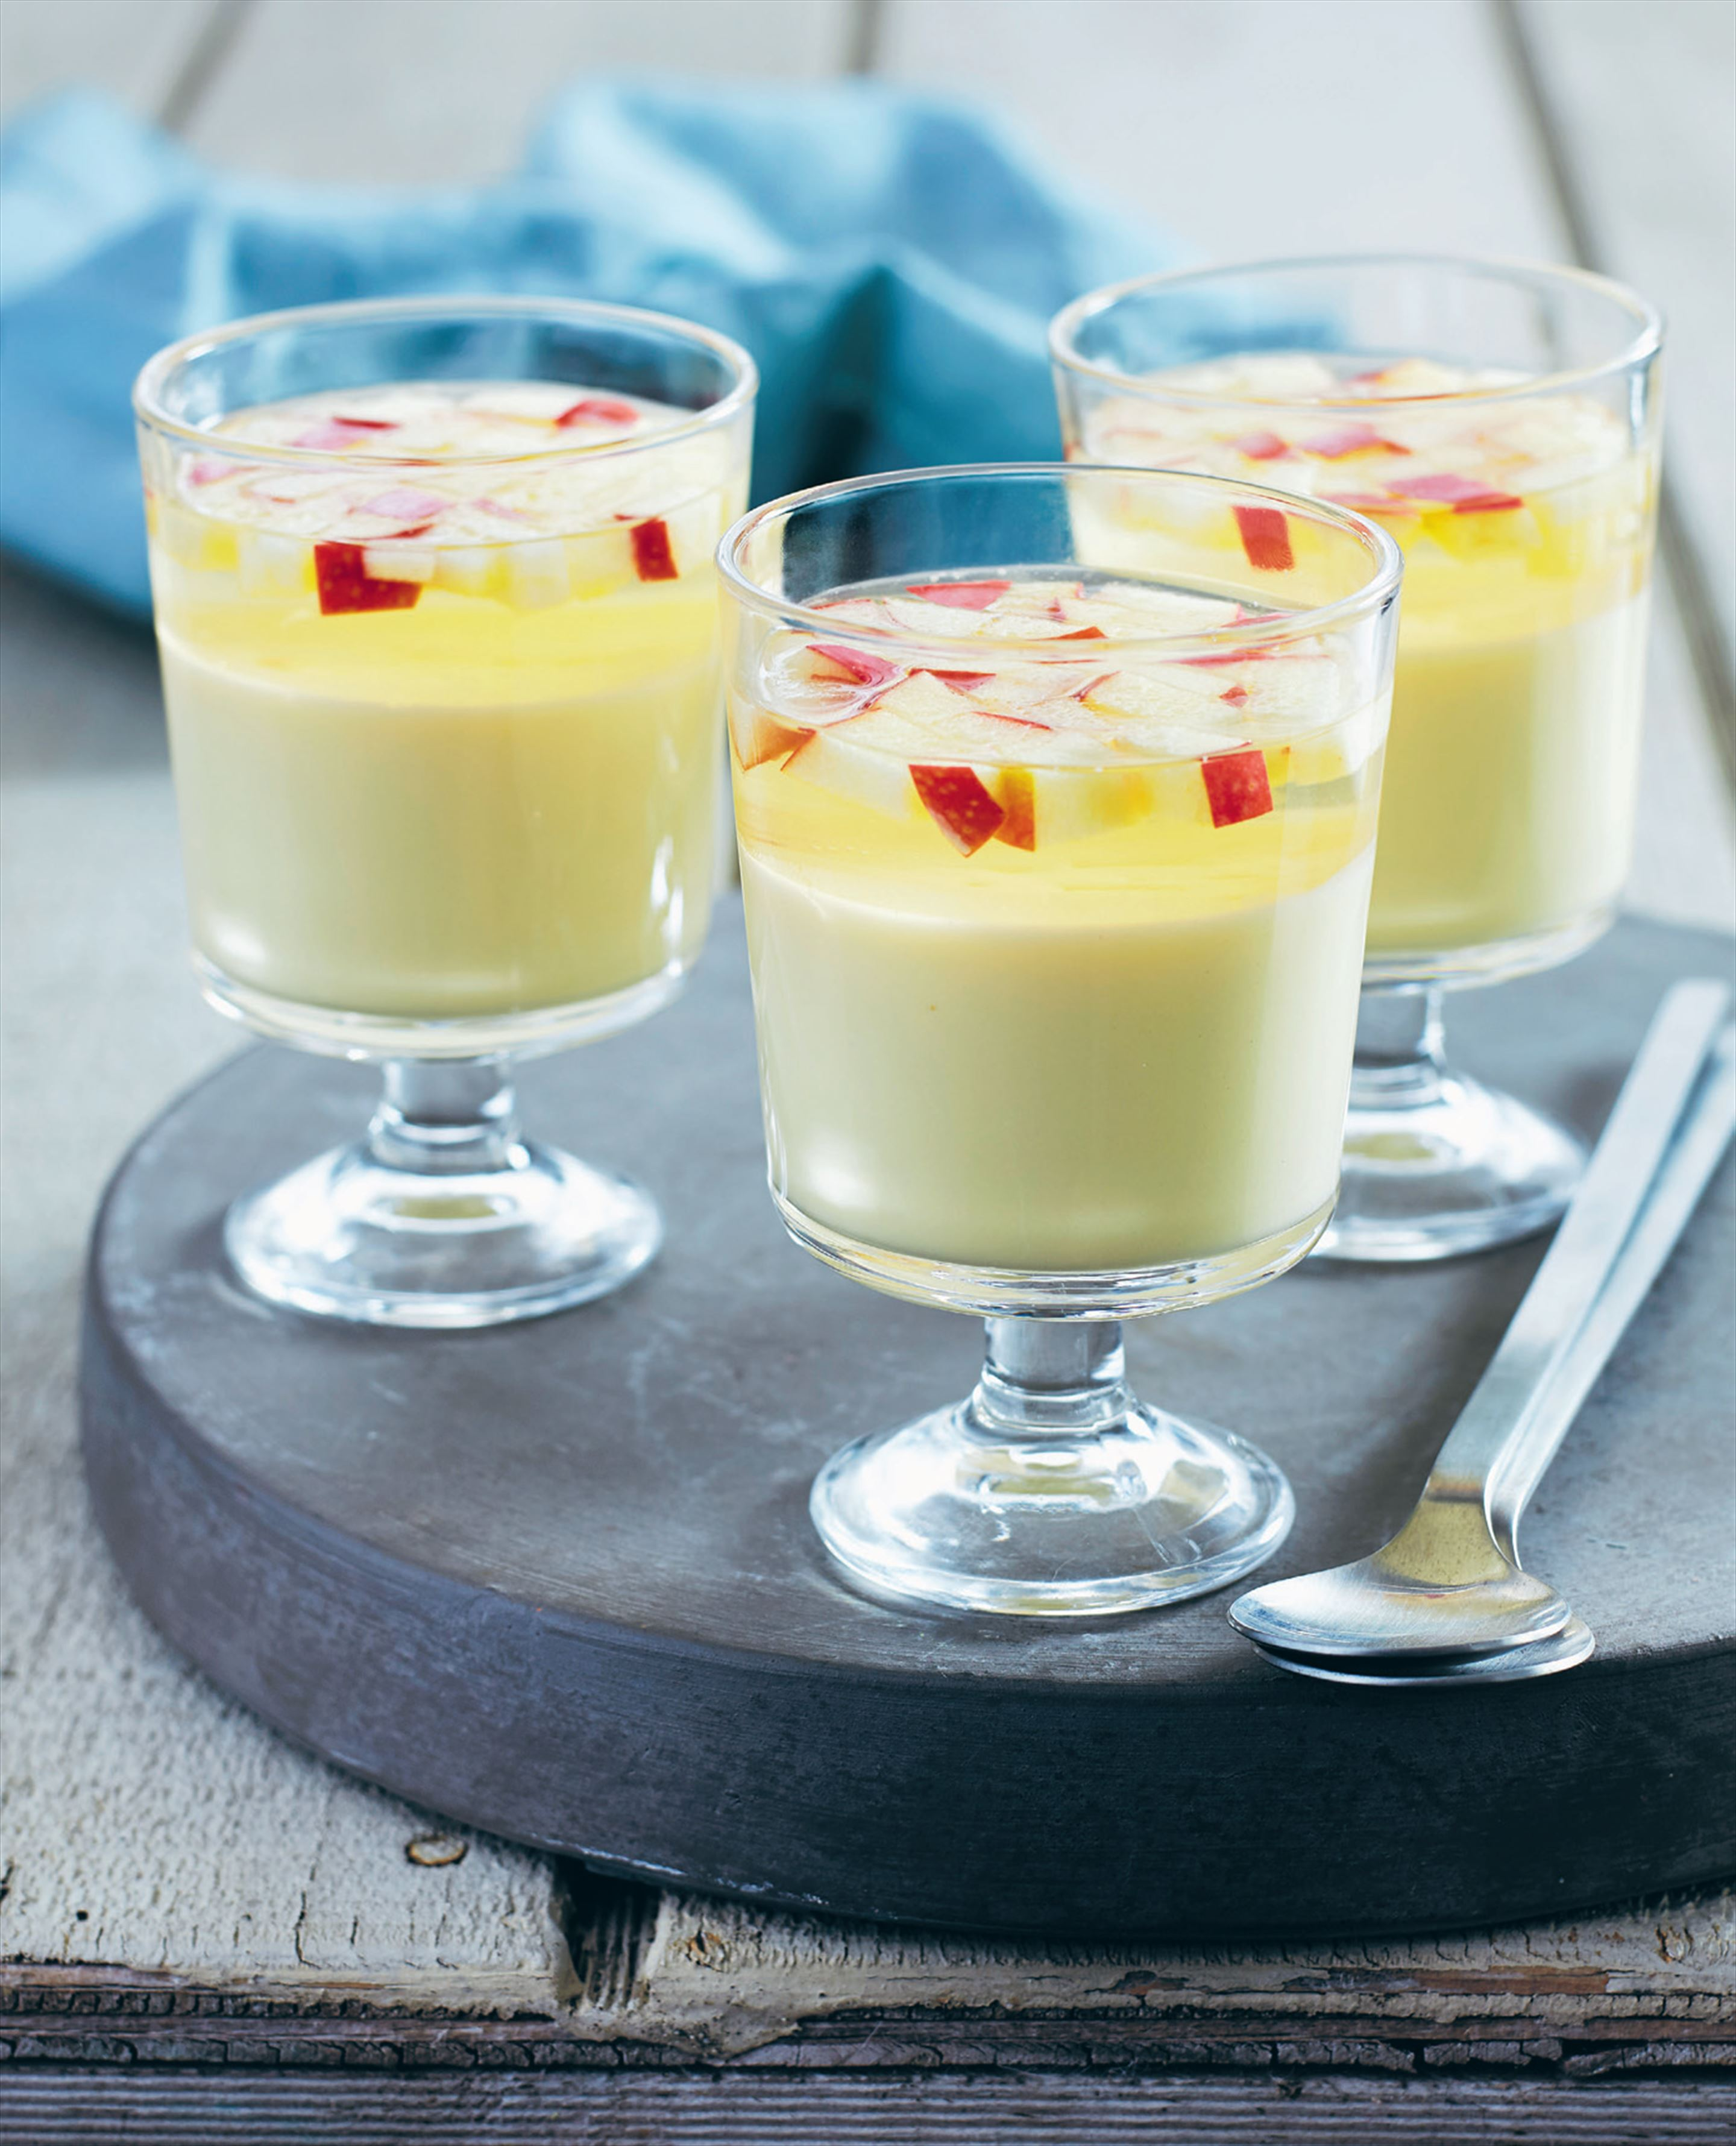 Ginger panna cotta with apple jelly